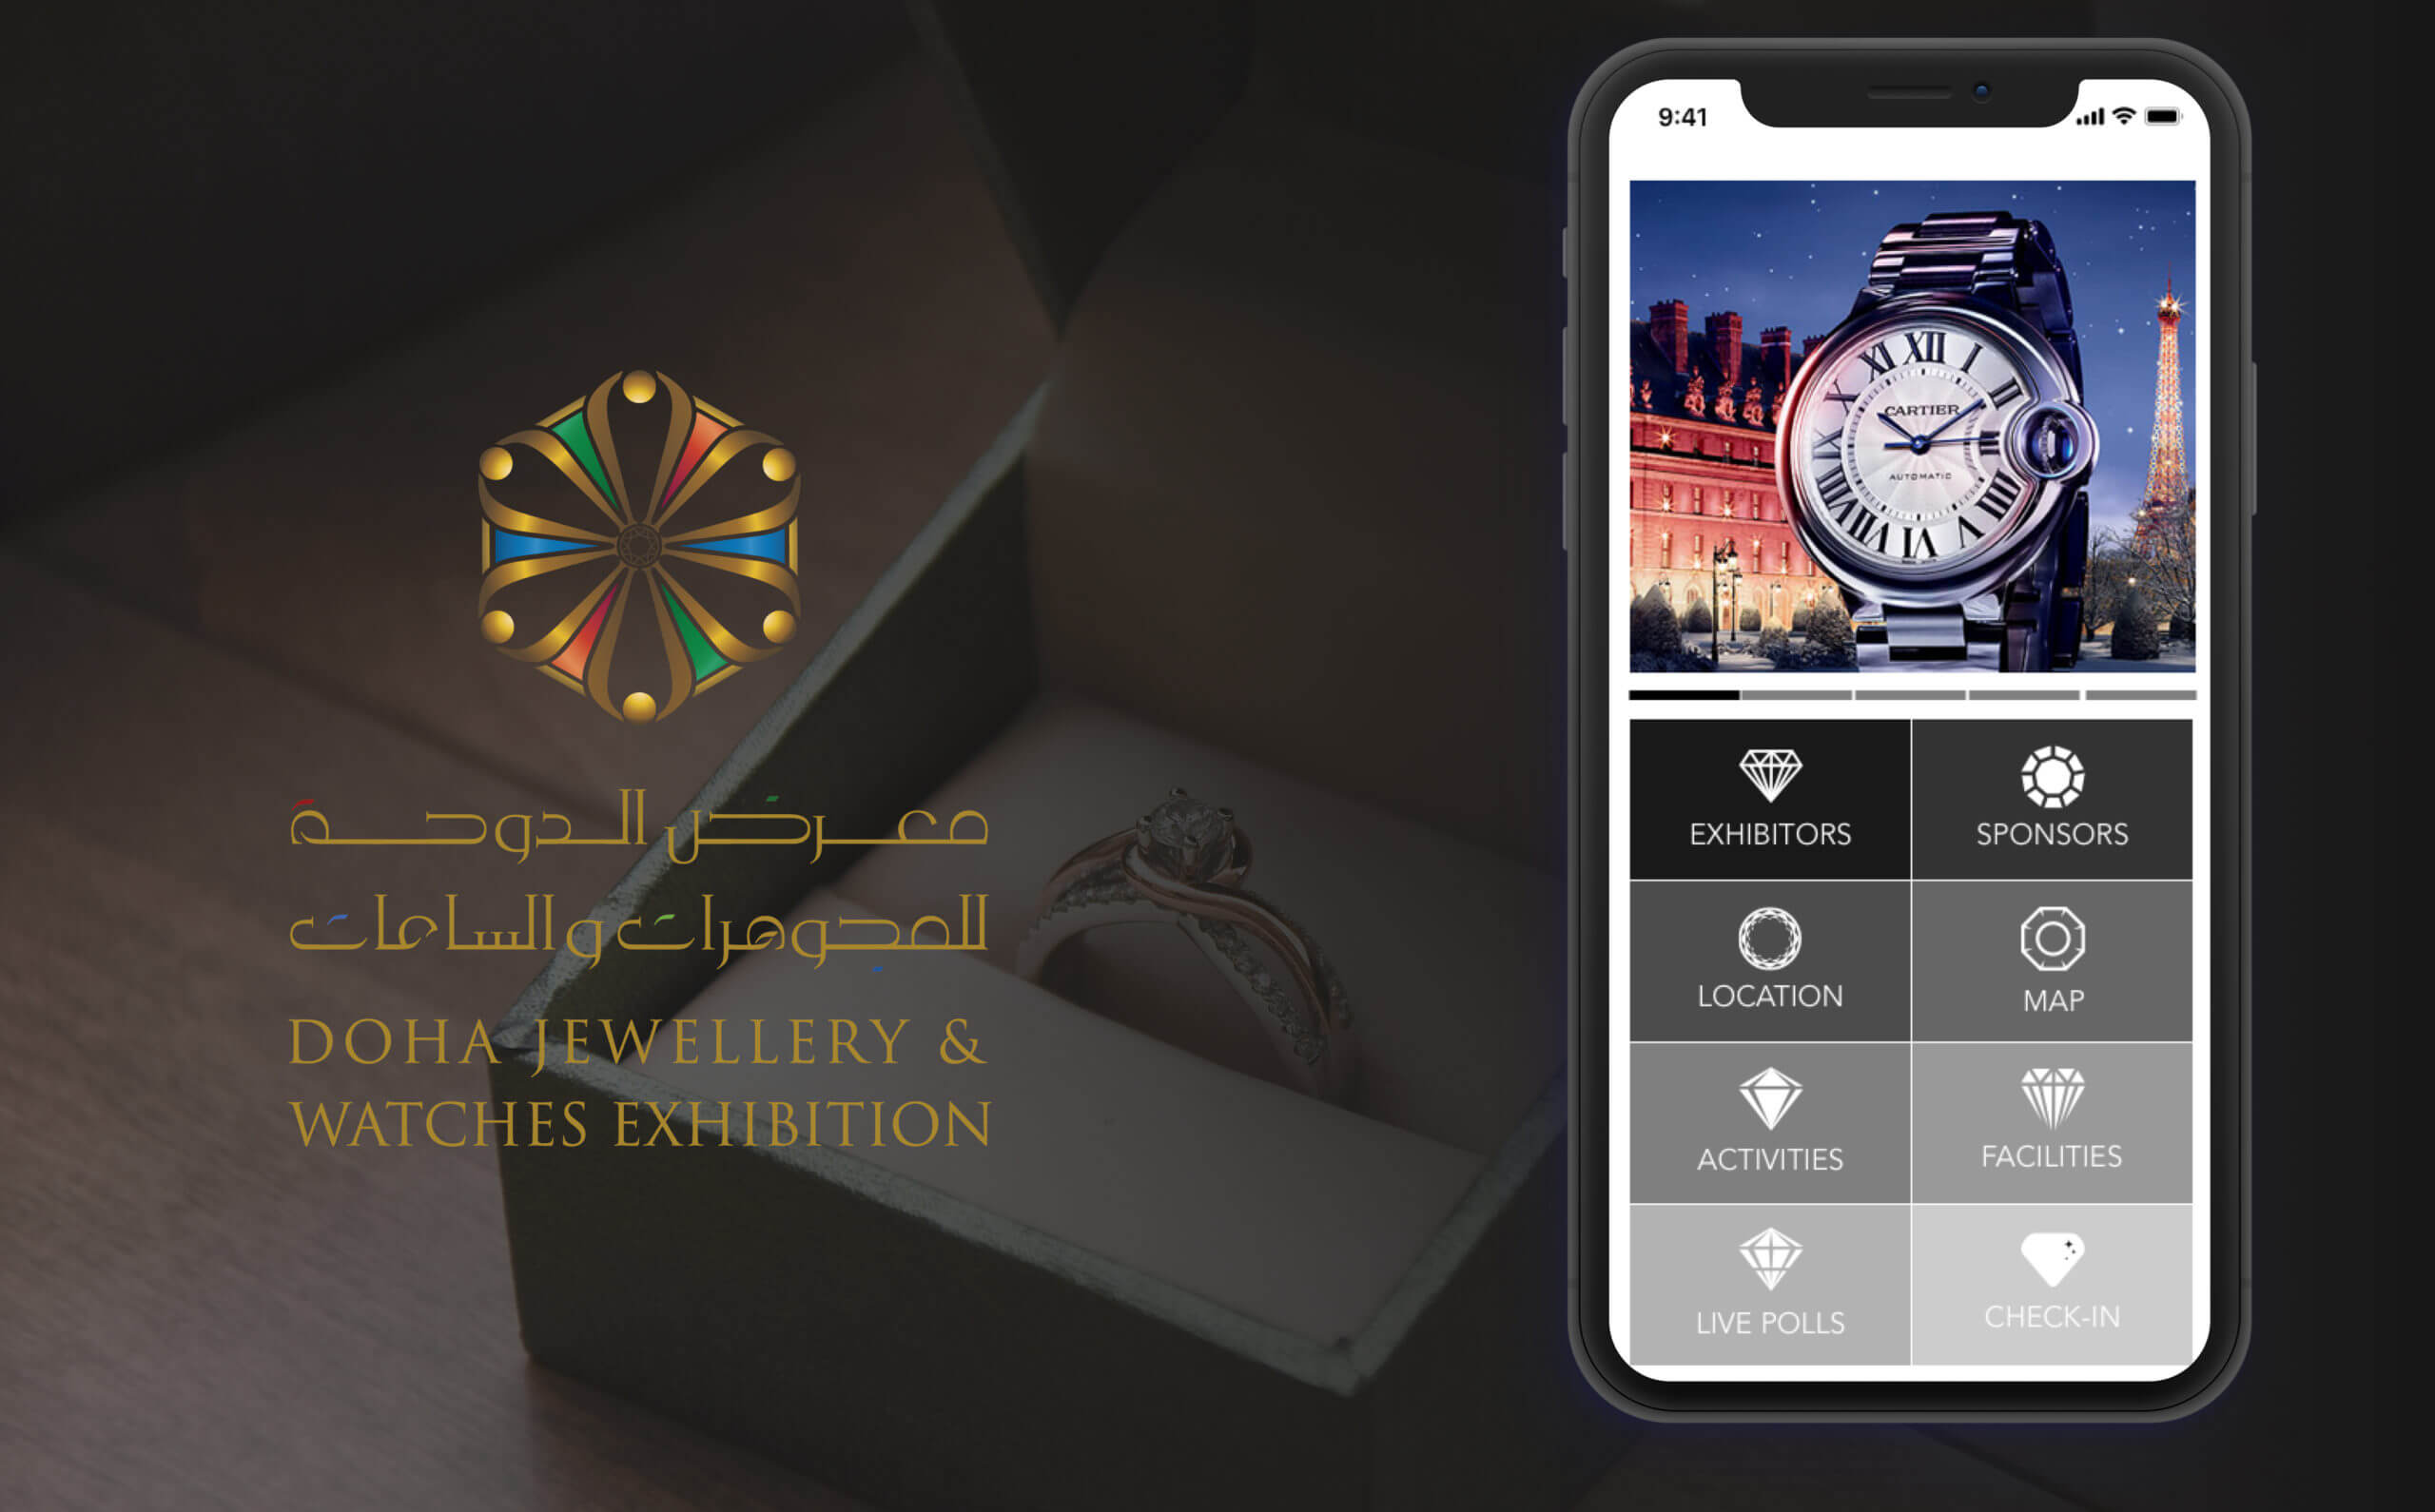 Doha Jewellery & Watches Exhibition featured image